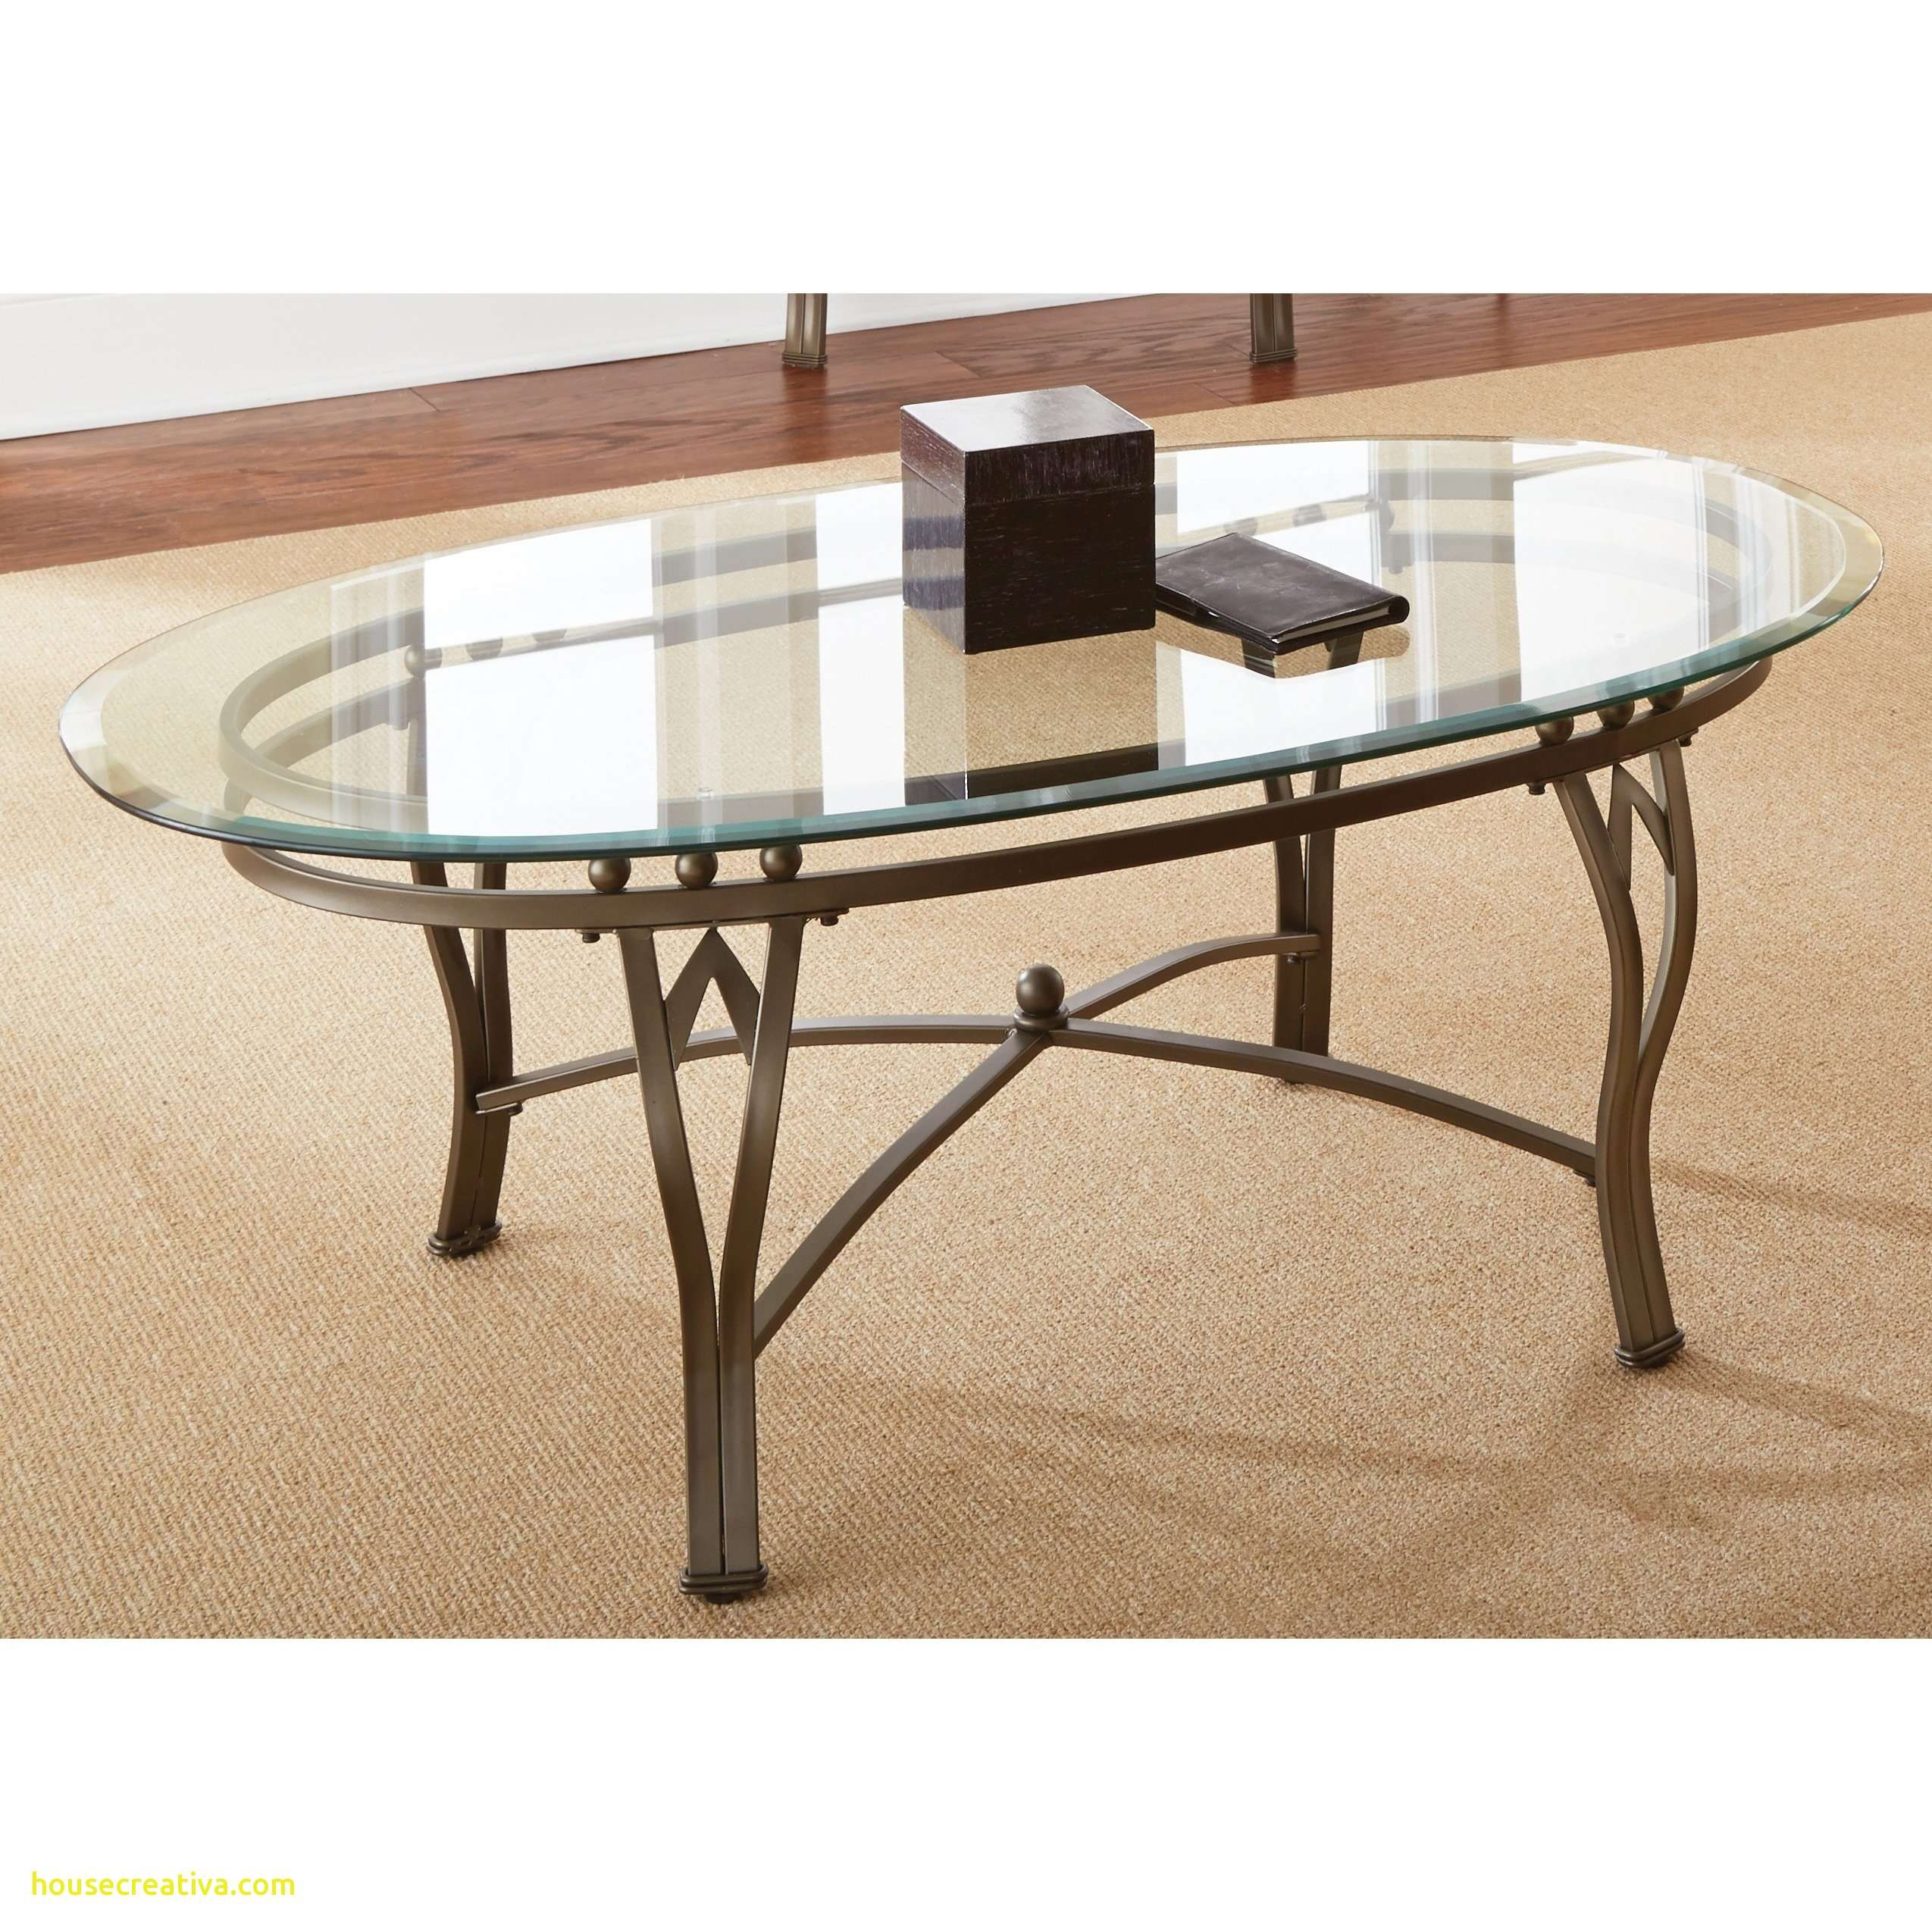 Awesome 36 Inch Oval Coffee Table Homedecoration Homedecorations